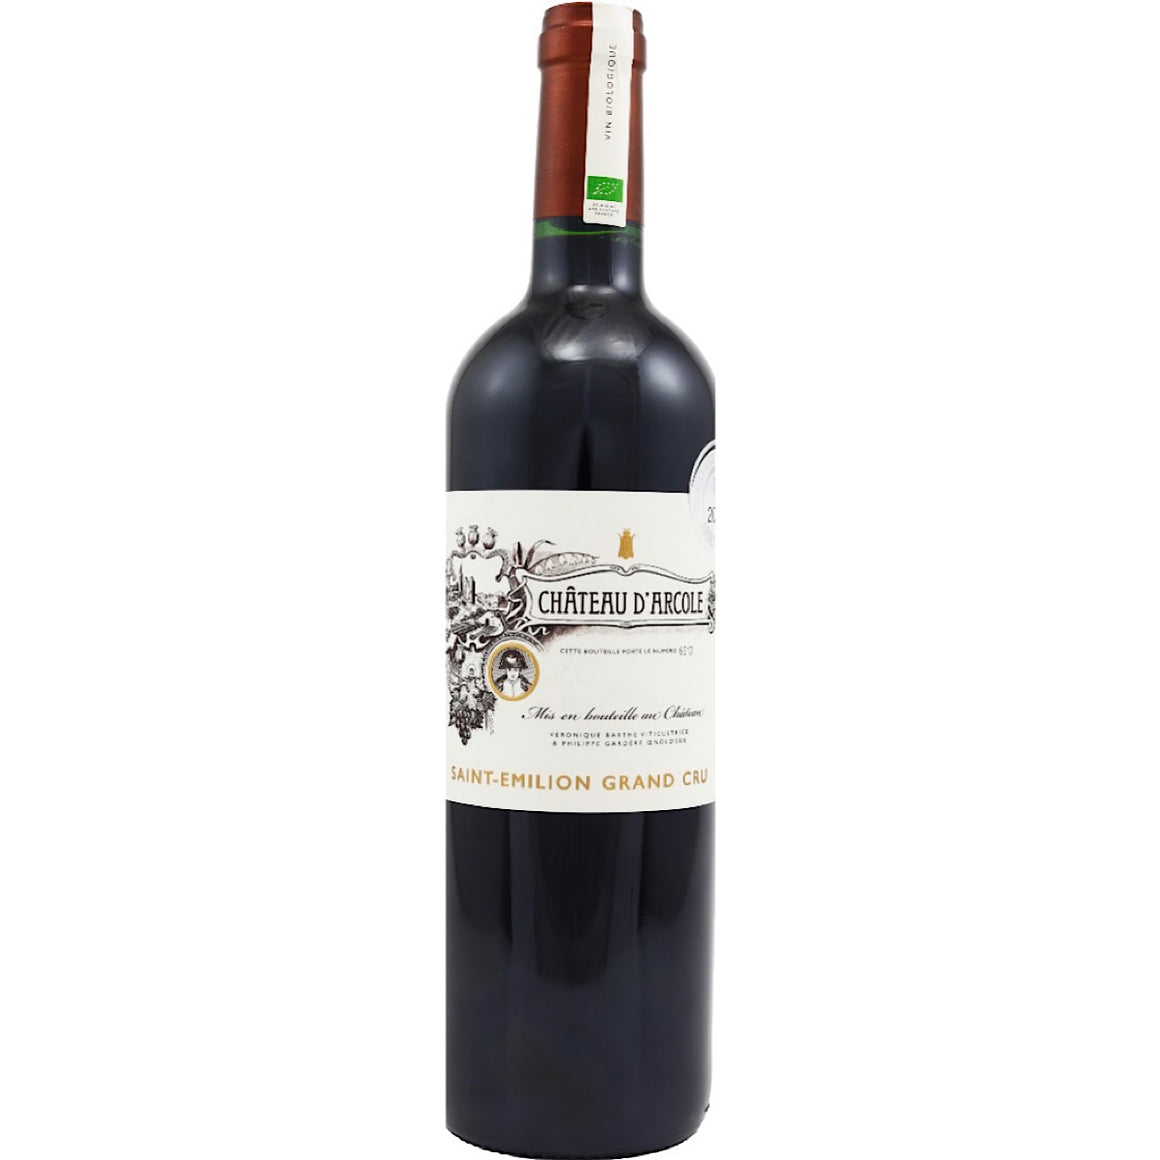 Château d'Arcole Saint-Émilion Grand Cru, 6 Bottle Case 75 cl